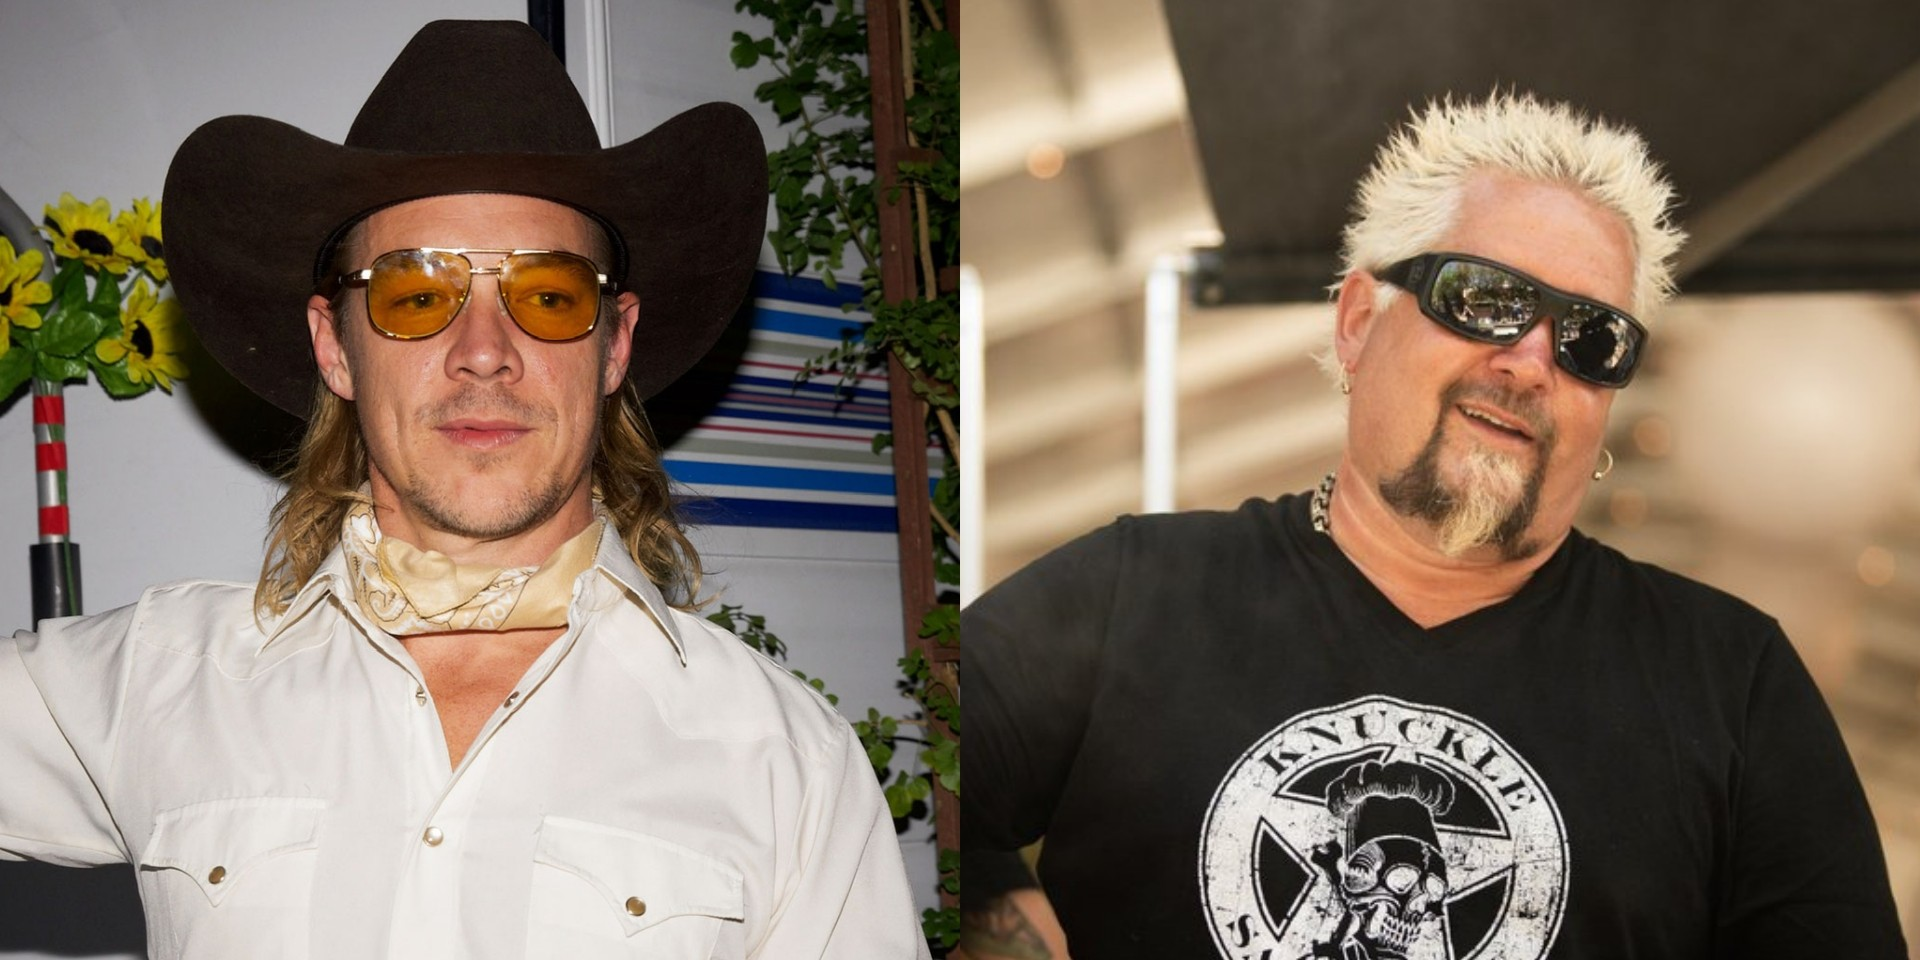 Guy Fieri, Billy Ray Cyrus, and Lil Nas X party in new Diplo music video, 'So Long ft. Cam' – watch